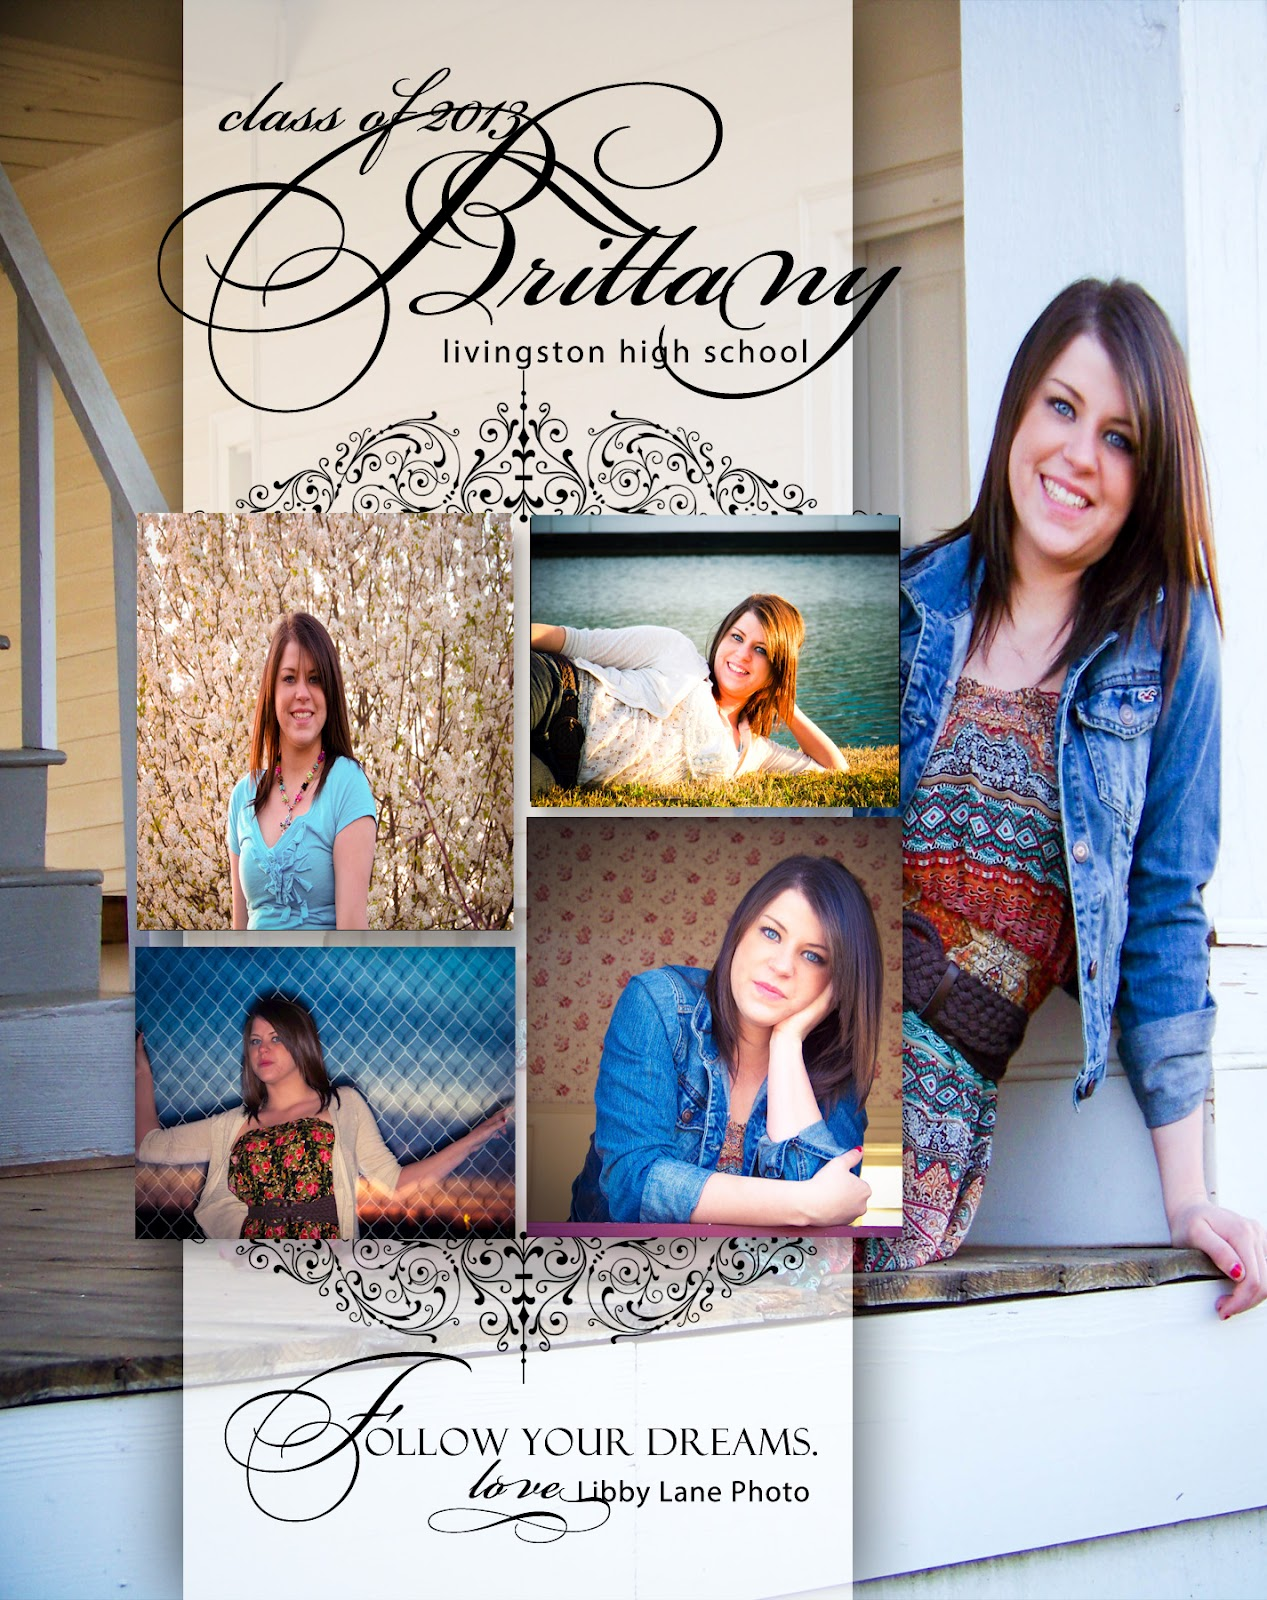 Libby Lane Photography: Free Digital File for Senior Yearbook Ads...